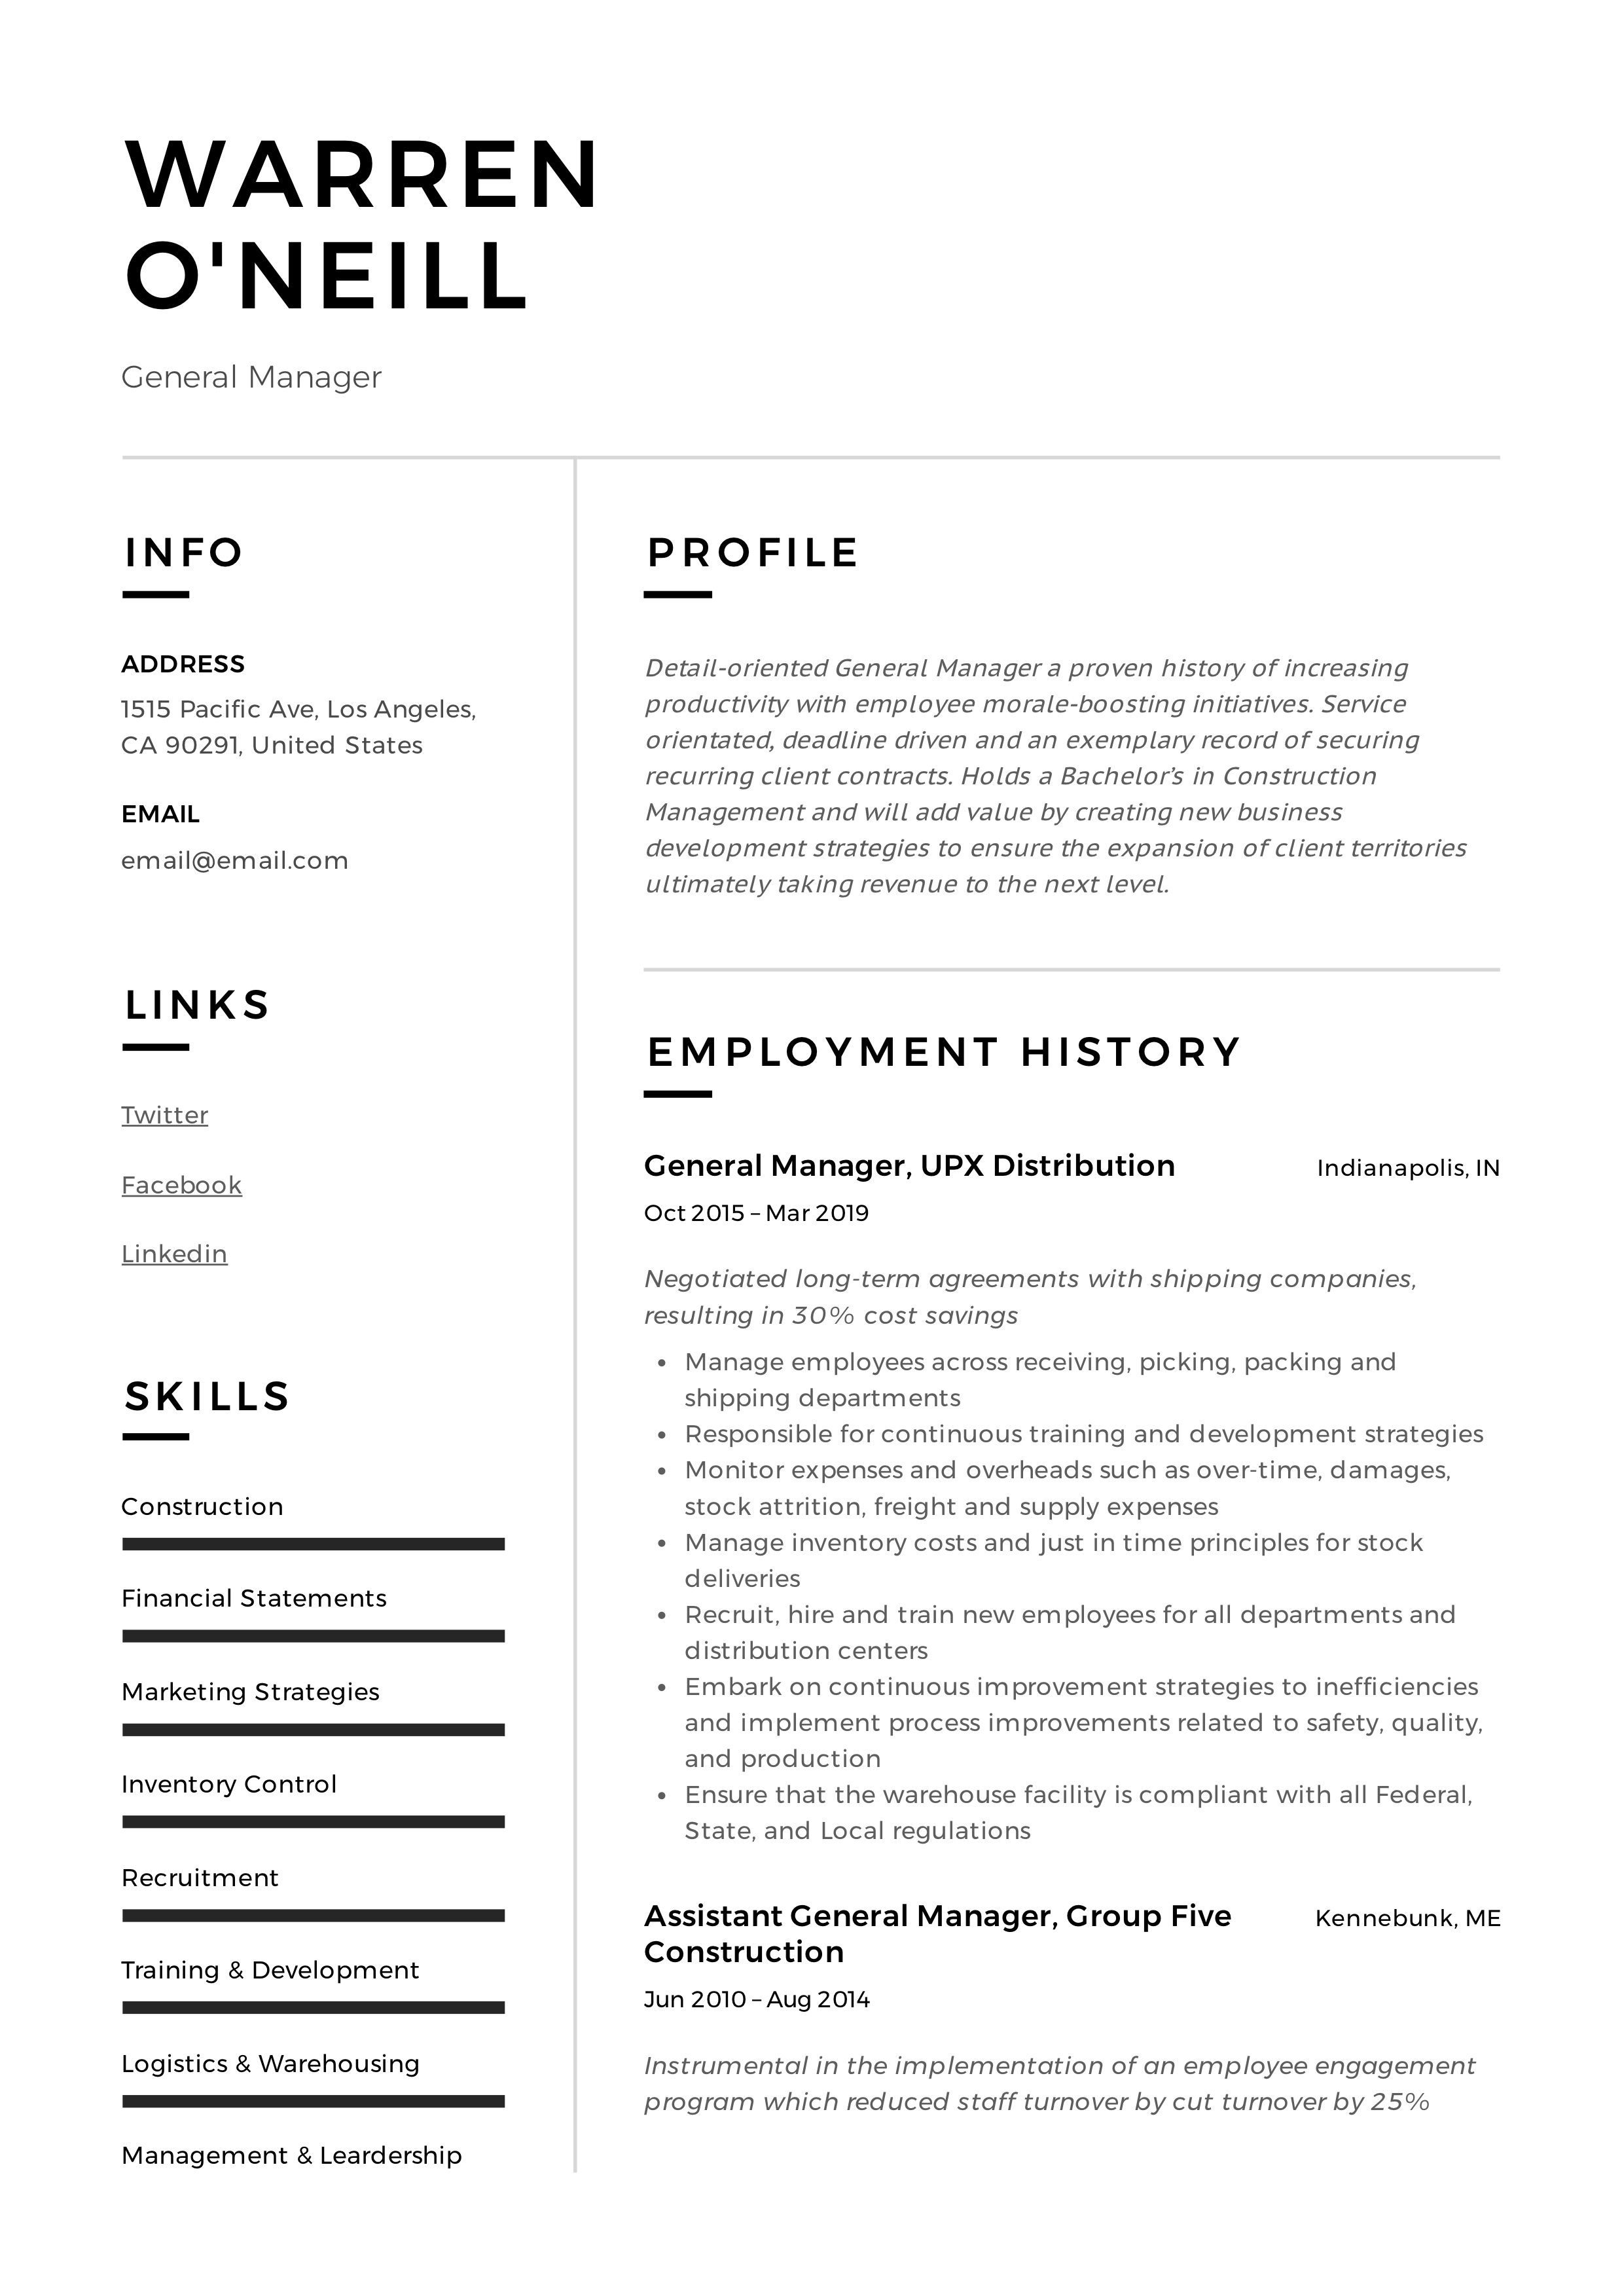 General Manager Resume Sample in 2020 Resume examples